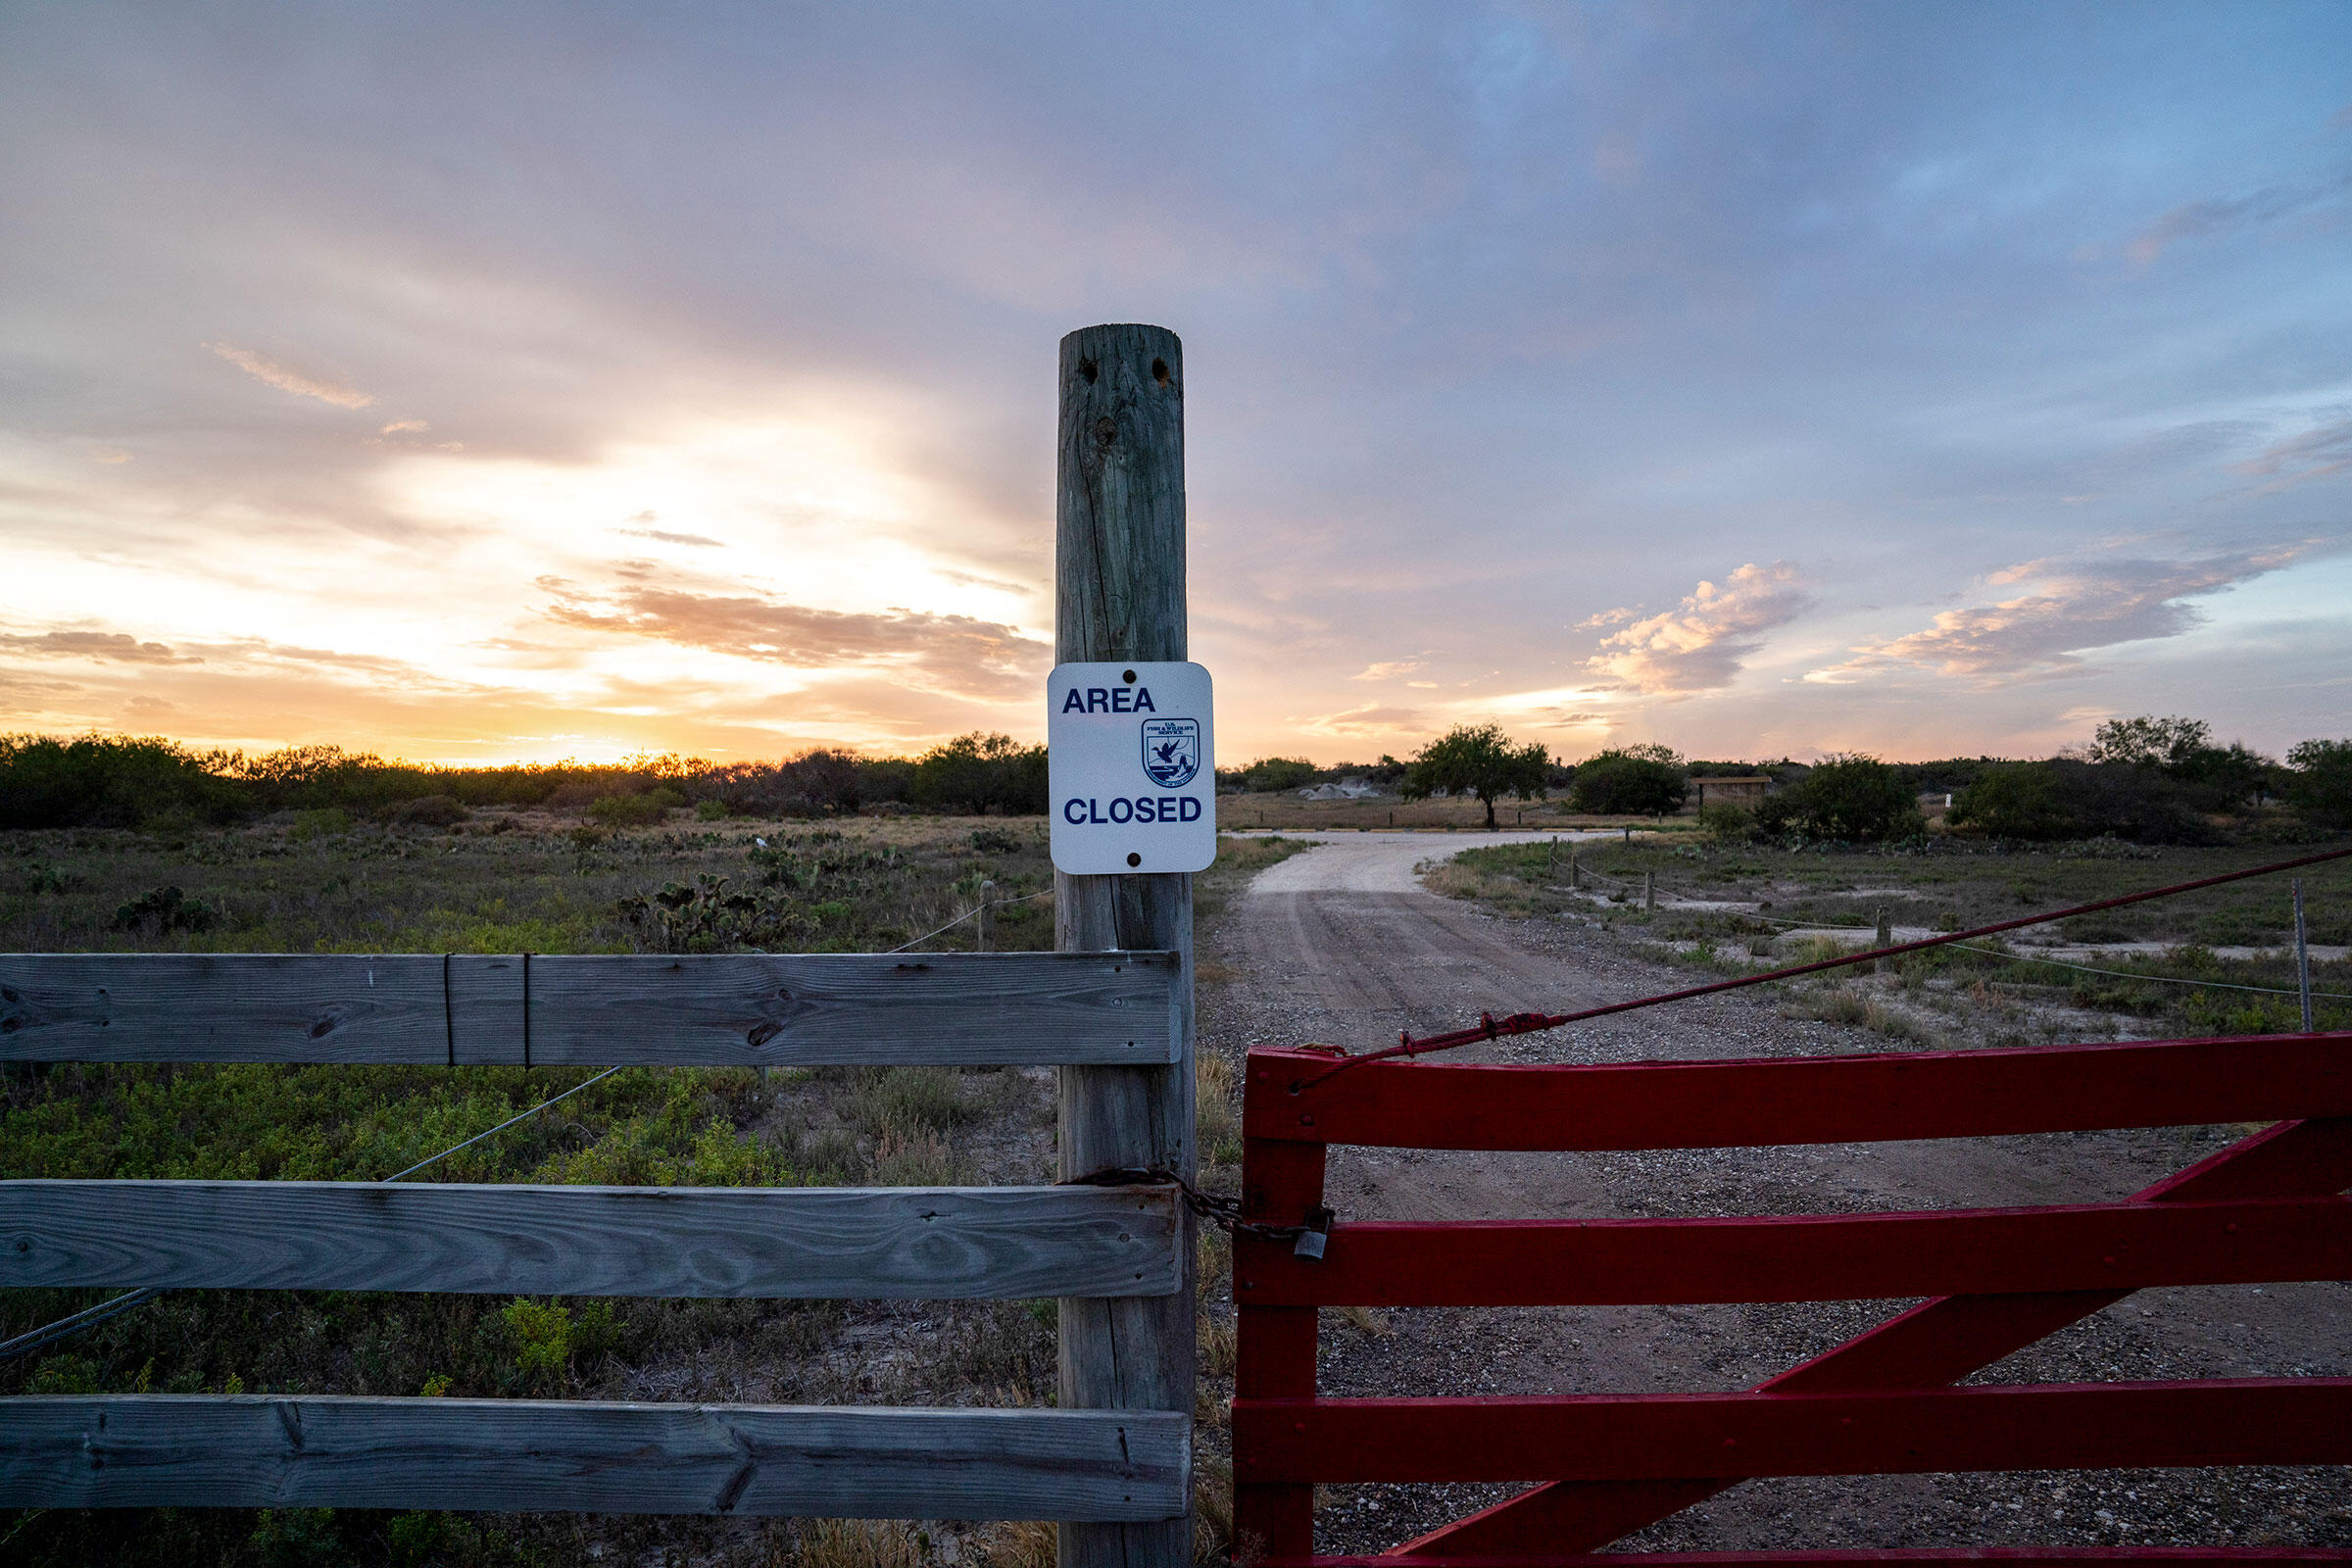 Two decades after it was acquired by the Laguna Atascosa refuge in Texas, the Bahia Grande unit remains closed to the public, largely due to insufficient funding. Verónica G. Cárdenas